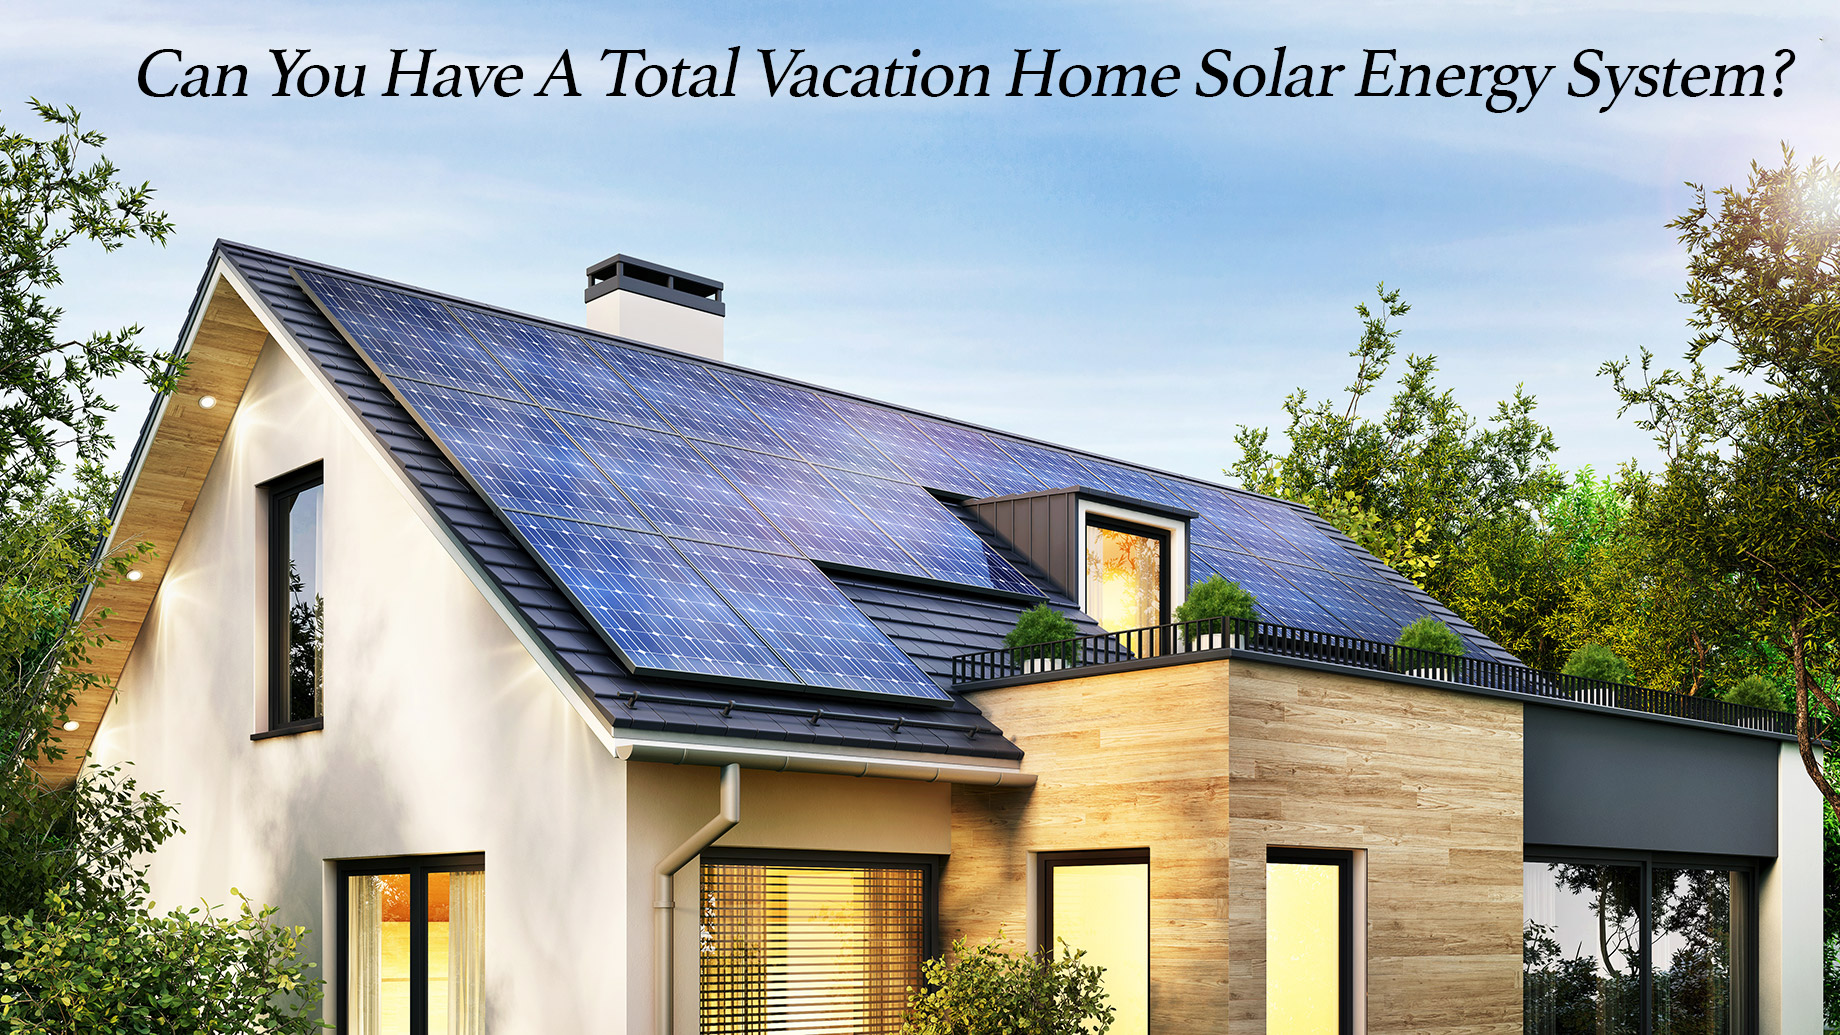 Can You Have A Total Vacation Home Solar Energy System?